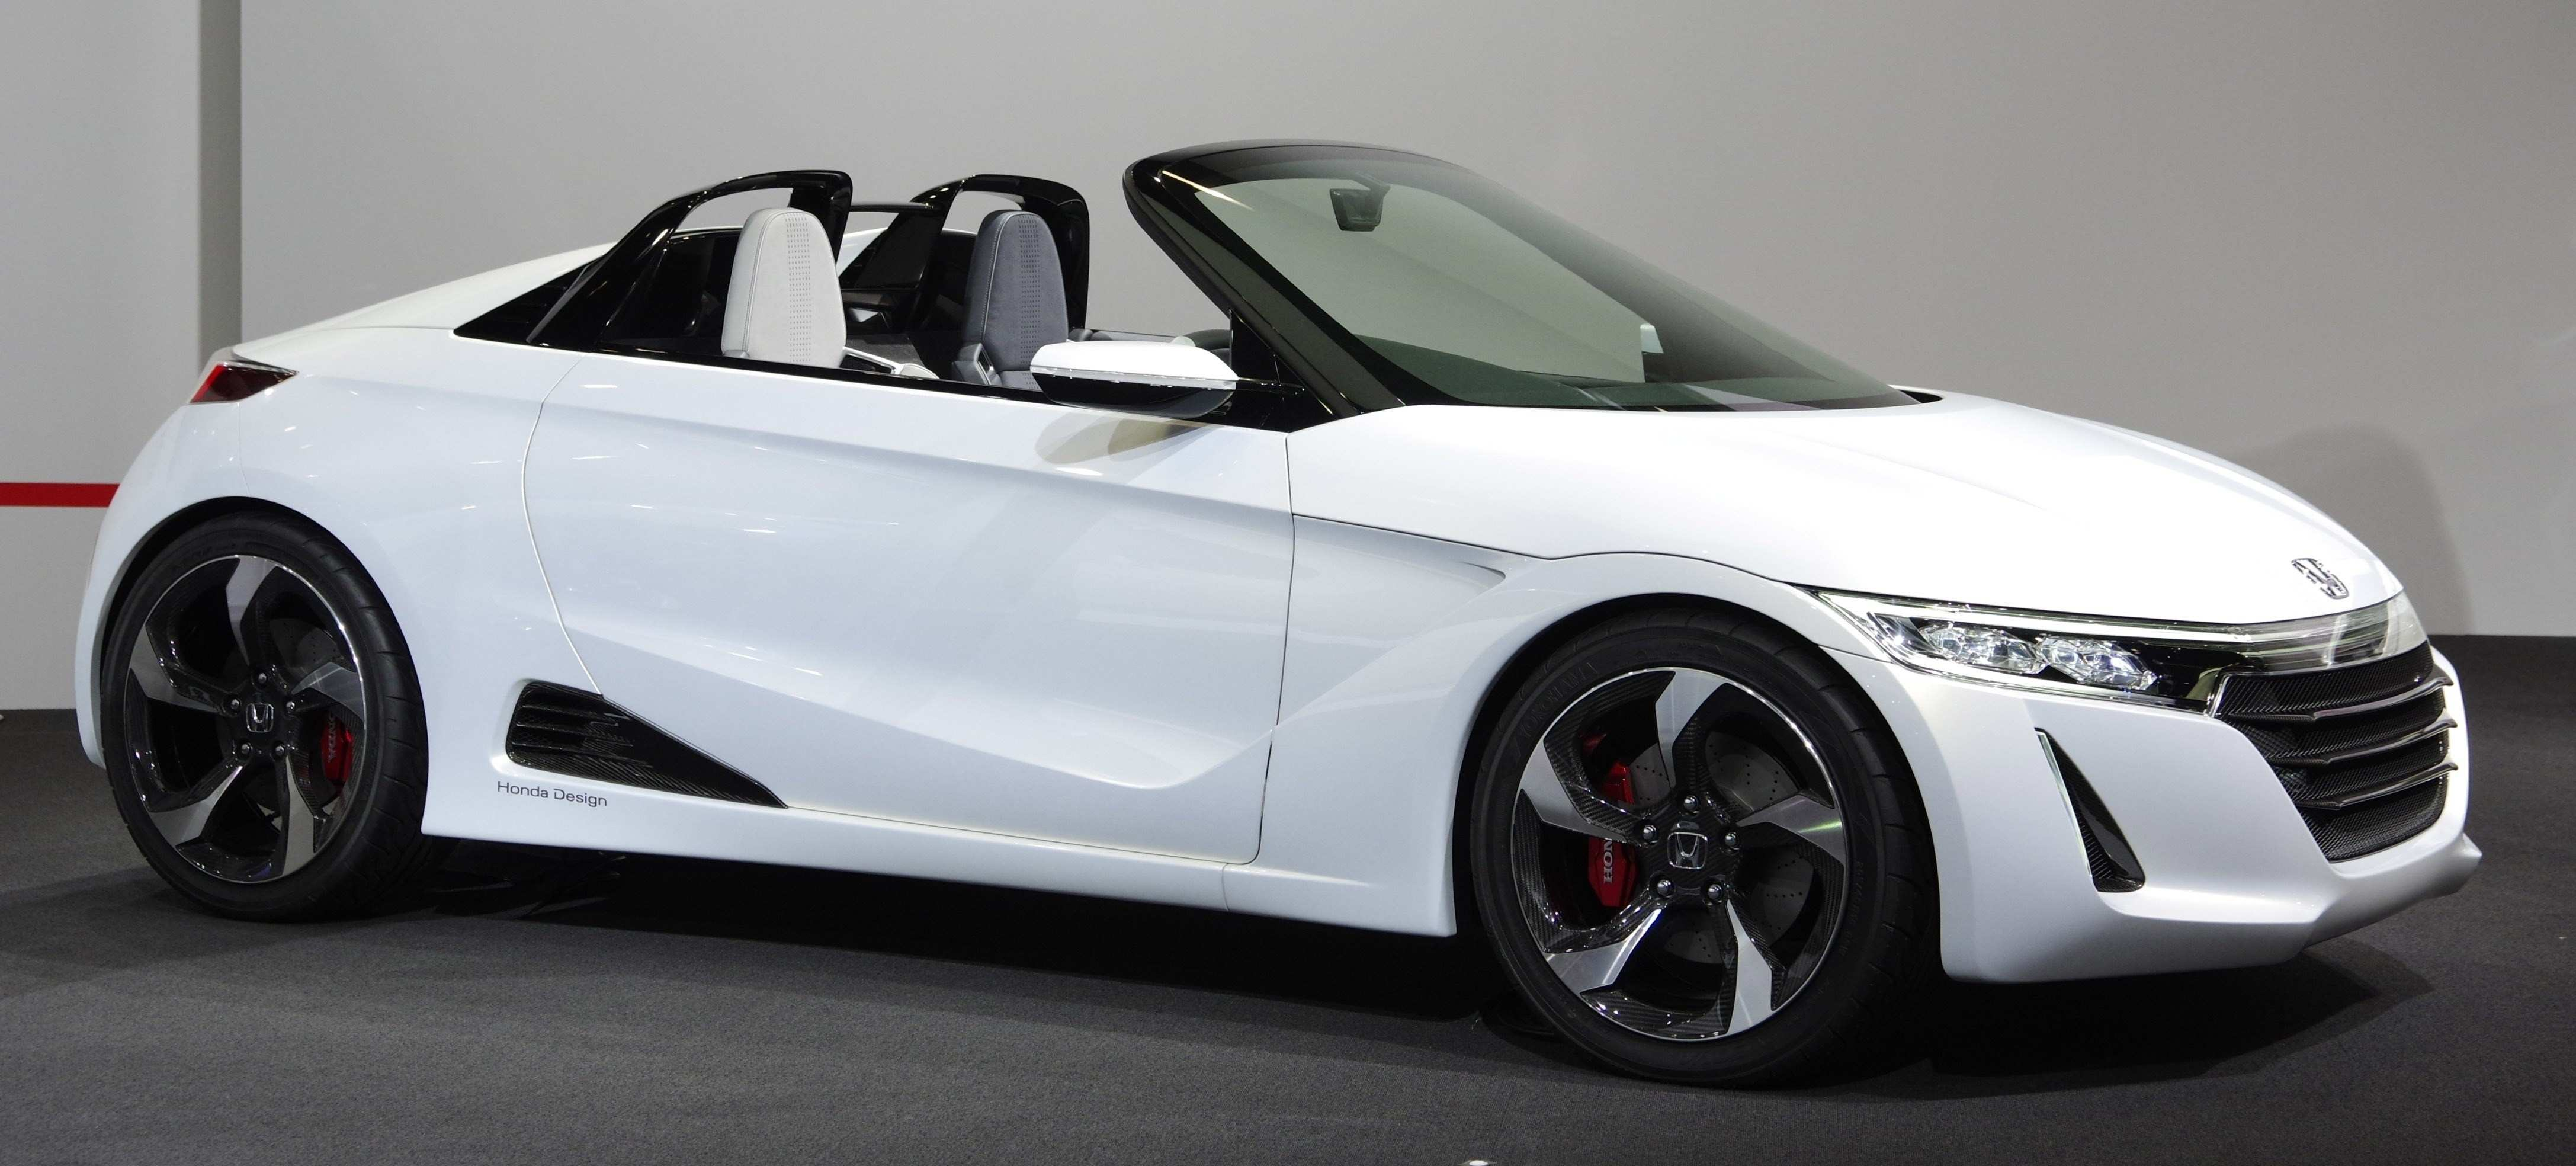 37 The Best 2020 Honda S660 Images